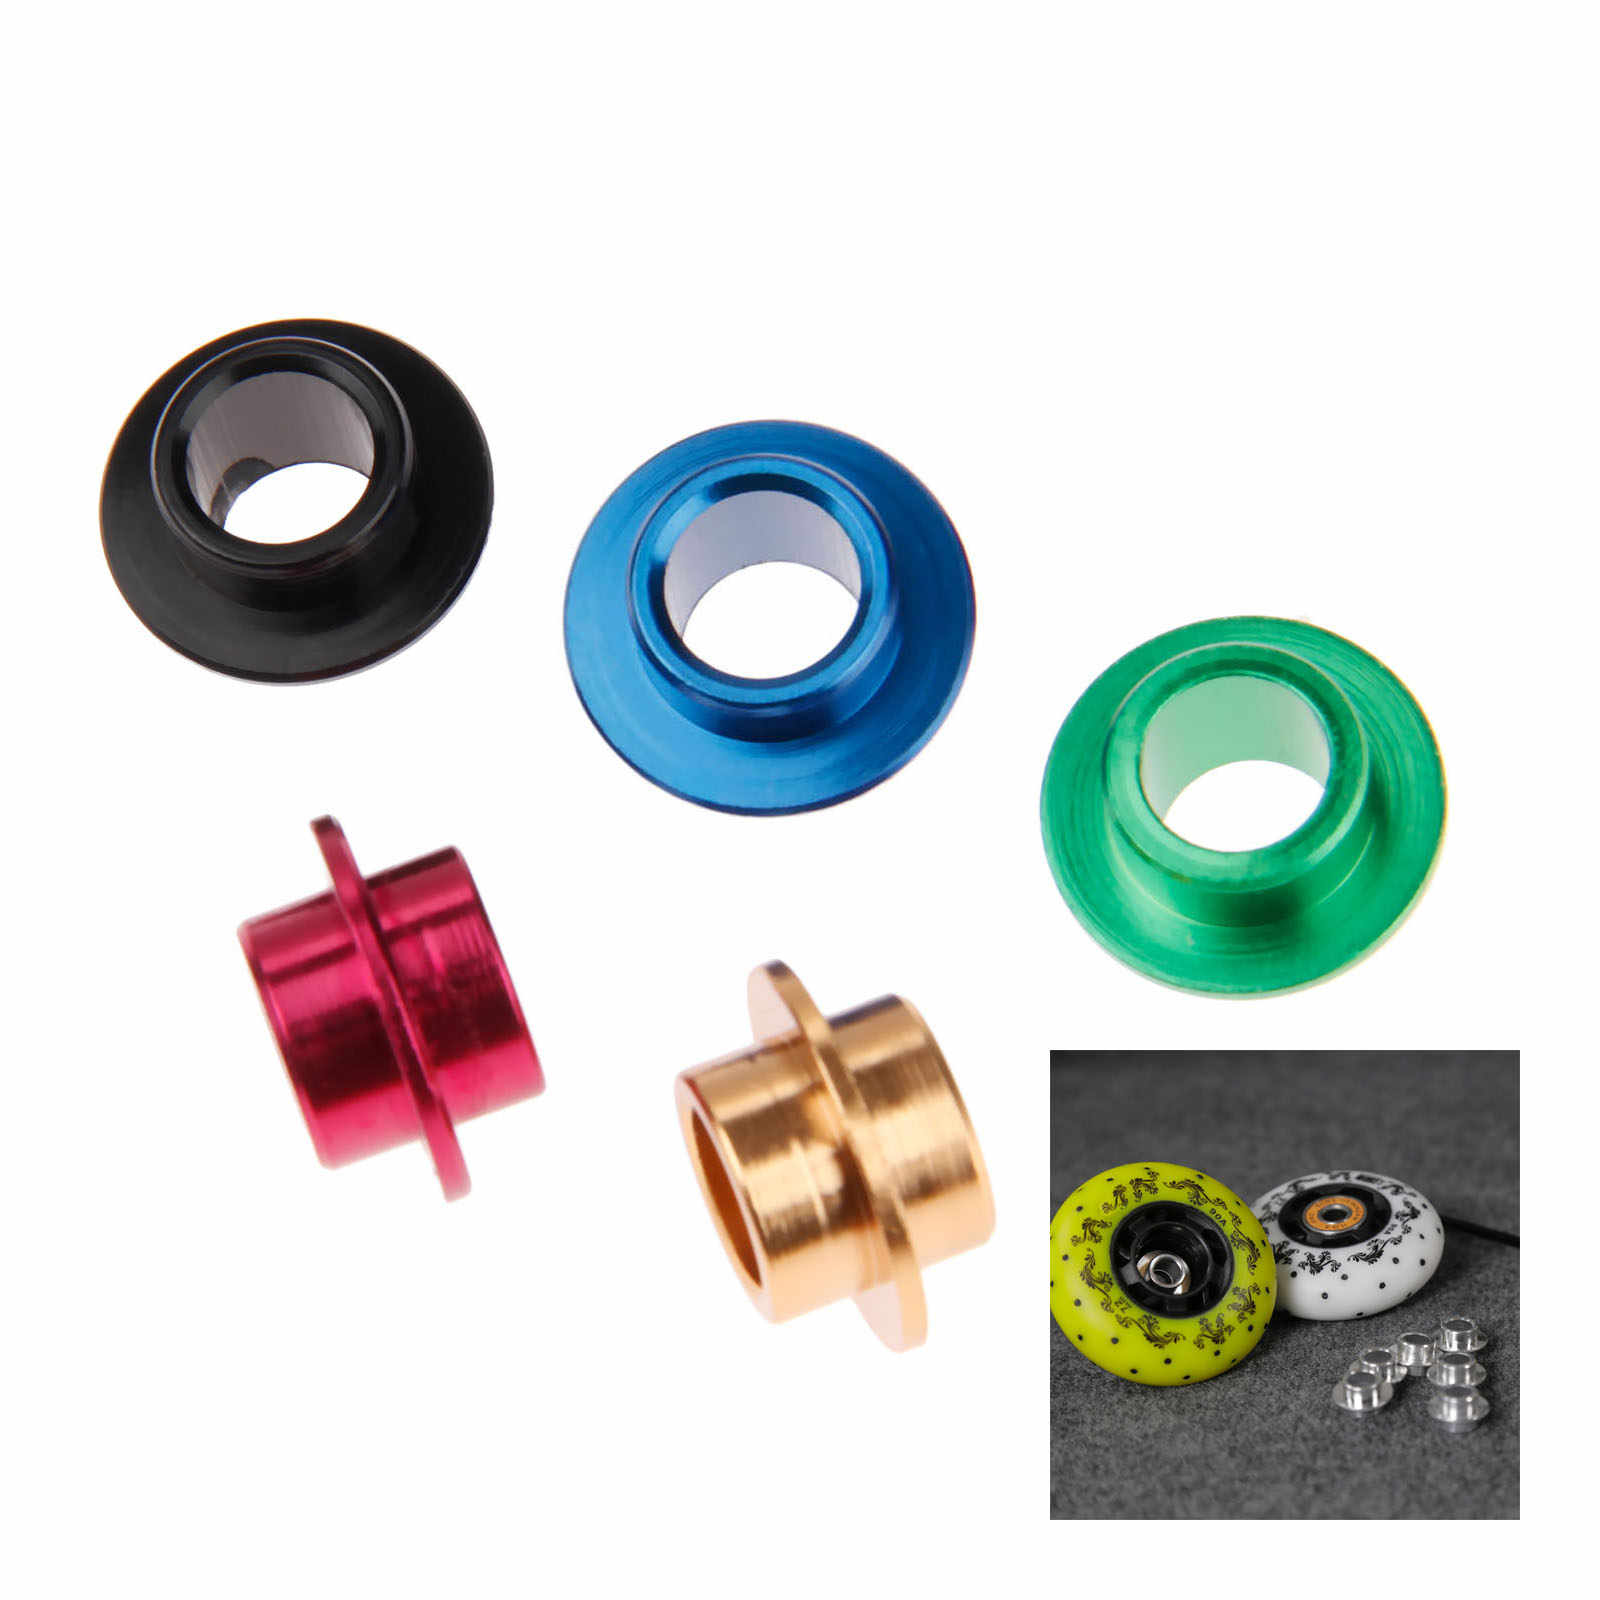 38f4e7dea53 Detail Feedback Questions about 8 Pcs Aluminium Alloy Inline Skate Spacers  Bearing Bushing For Roller Skates Powerslide Skating Spacer Parts 5 Colors  on ...